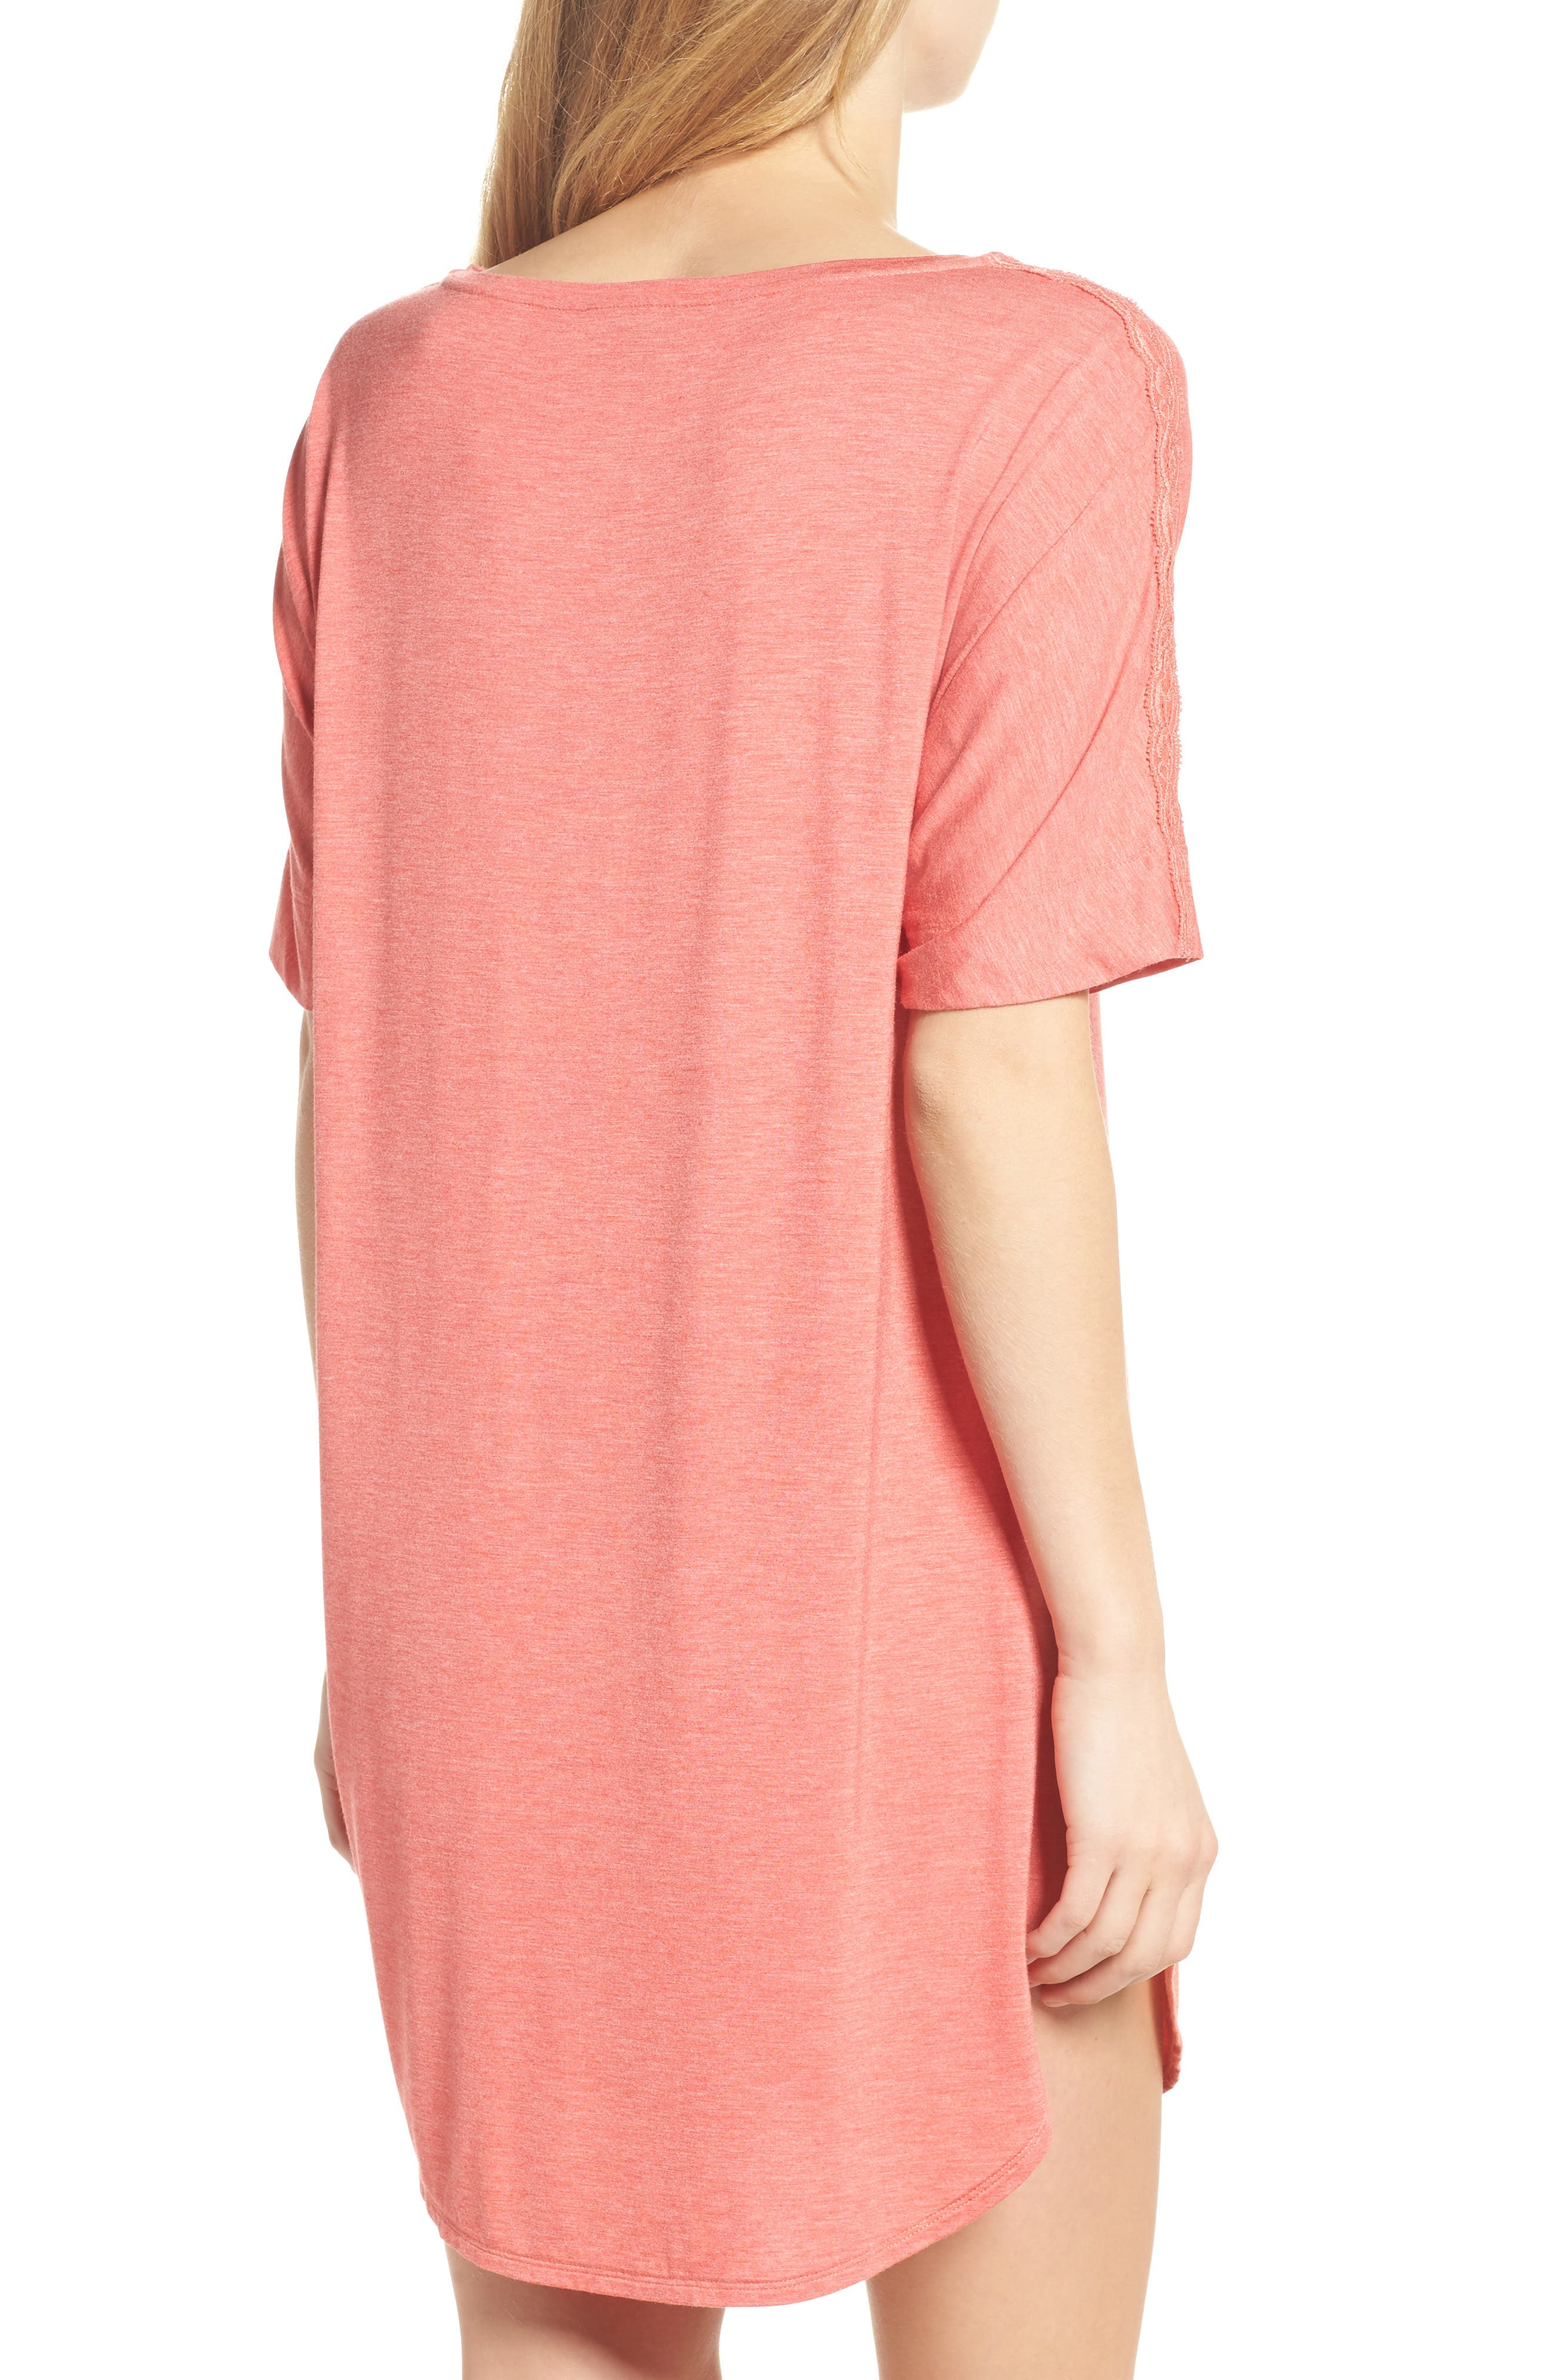 Feathers Essential Sleep Shirt,                             Alternate thumbnail 2, color,                             Coral